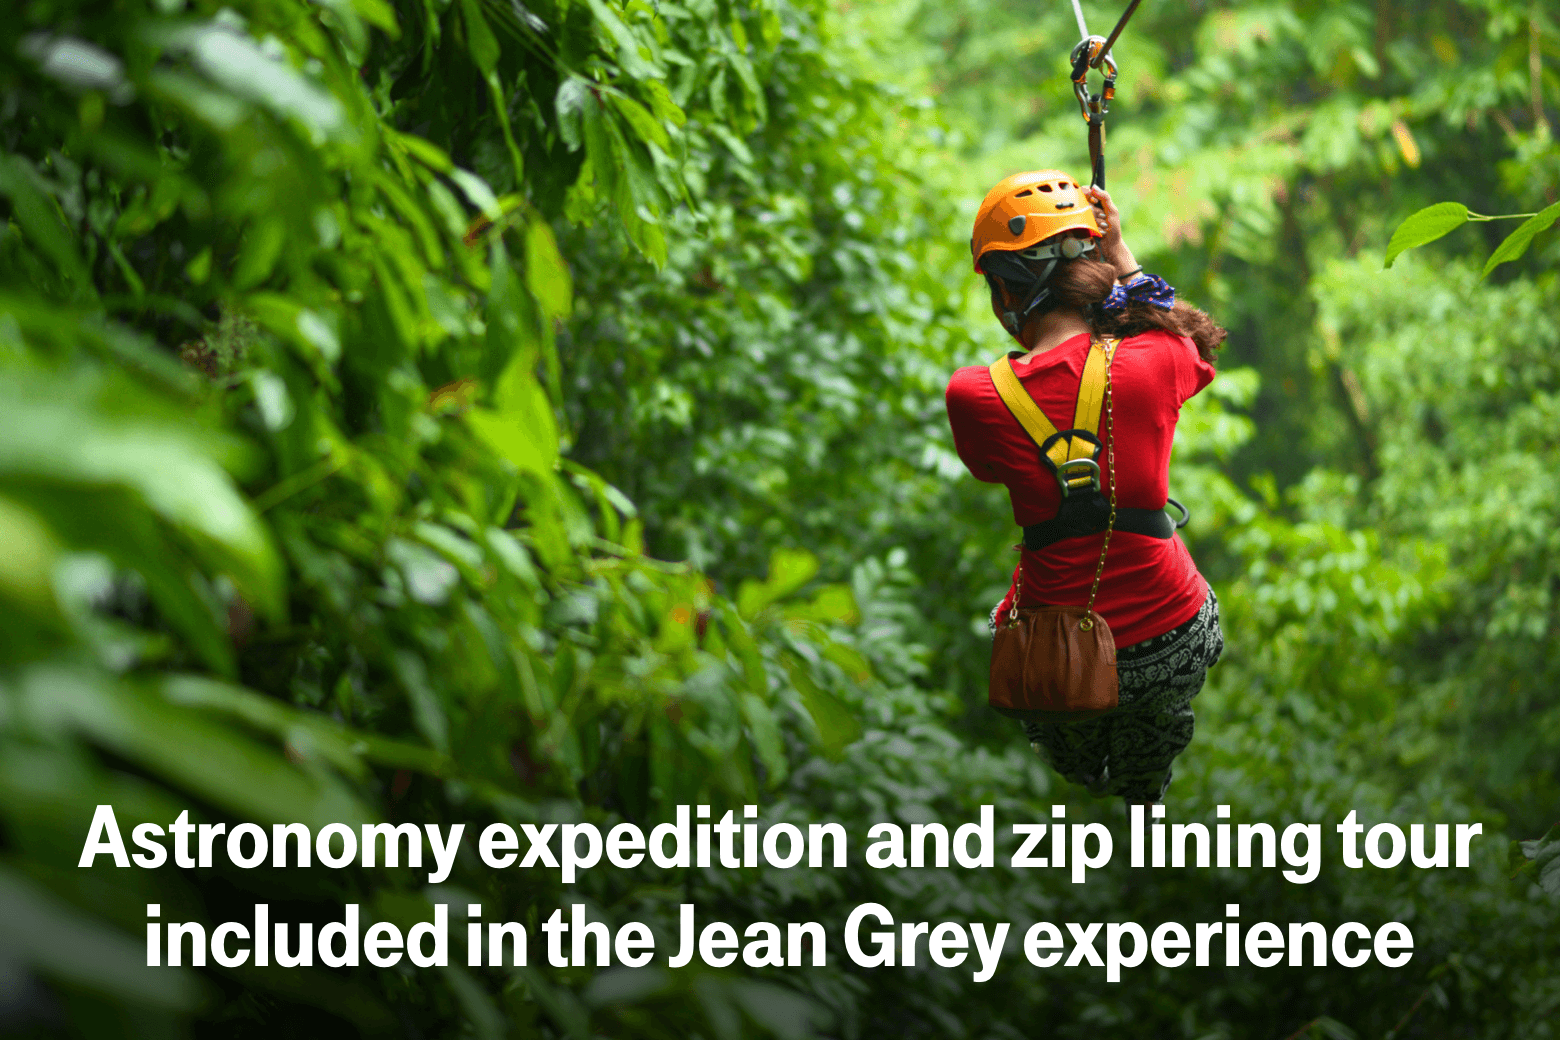 Astronomy expedition and zip lining tour included in the Jean Grey experience